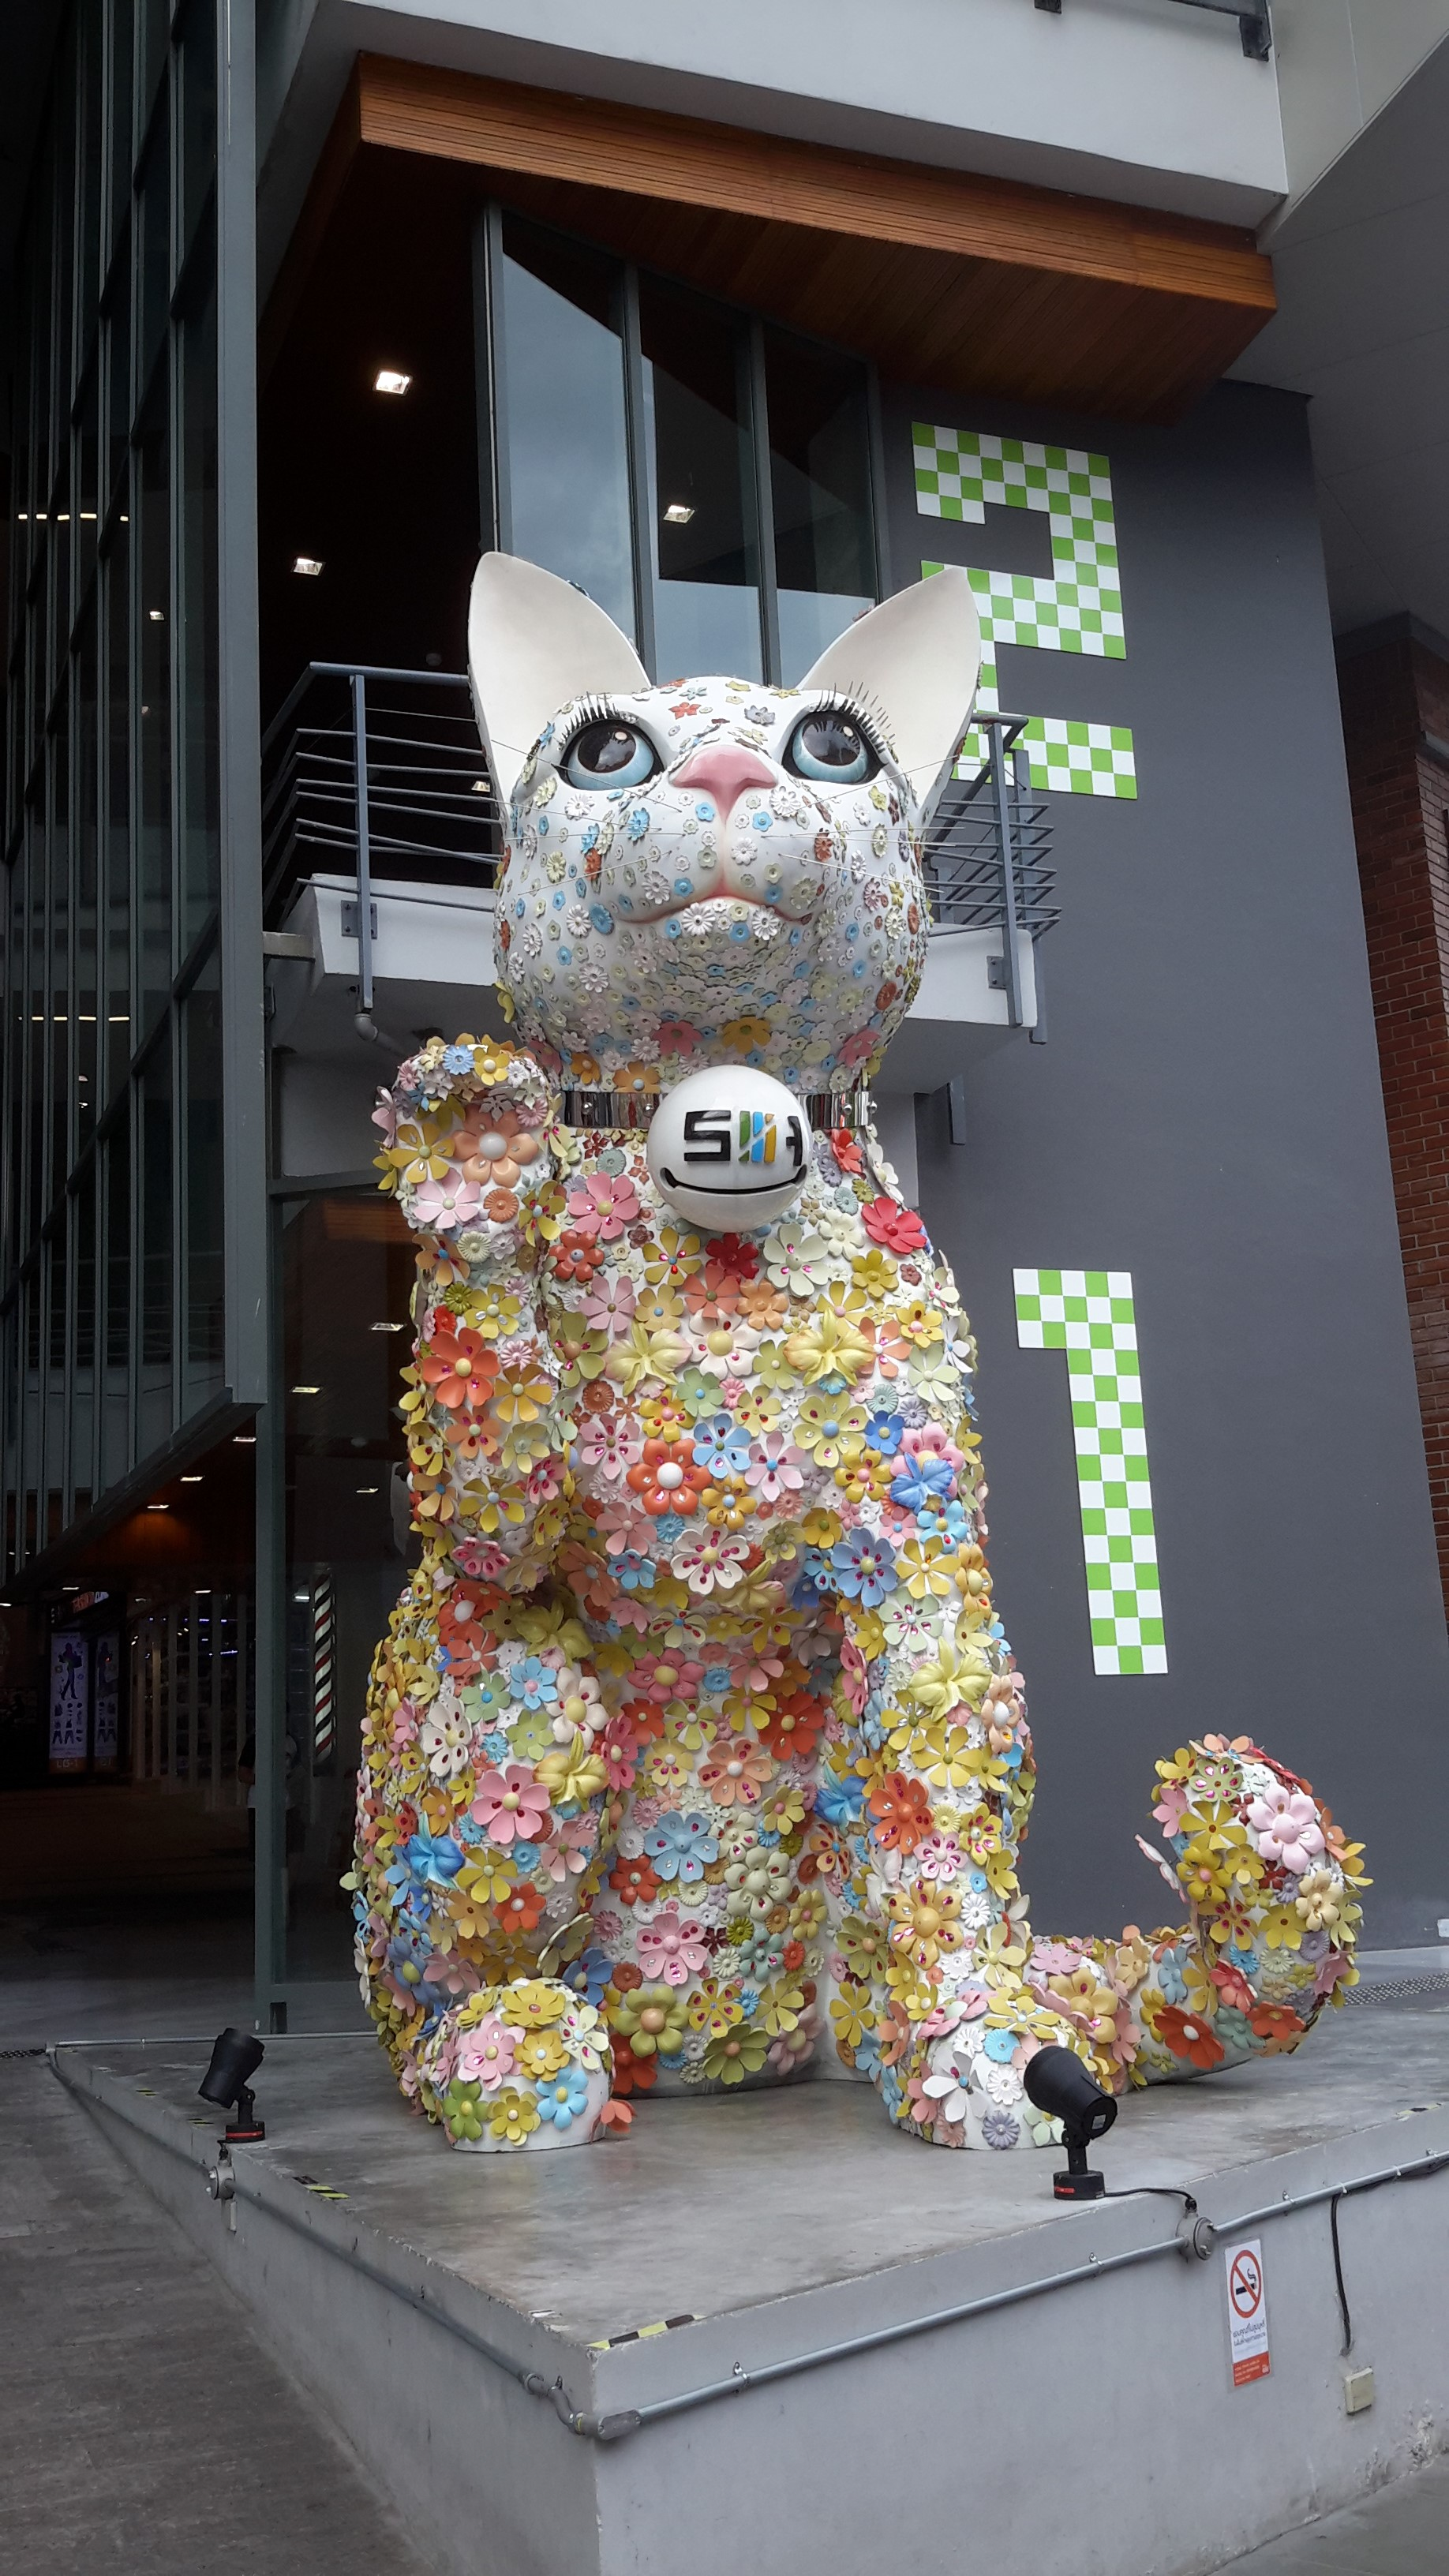 GIANT LUCKY CAT BECKONS YOU TO THE MALL .